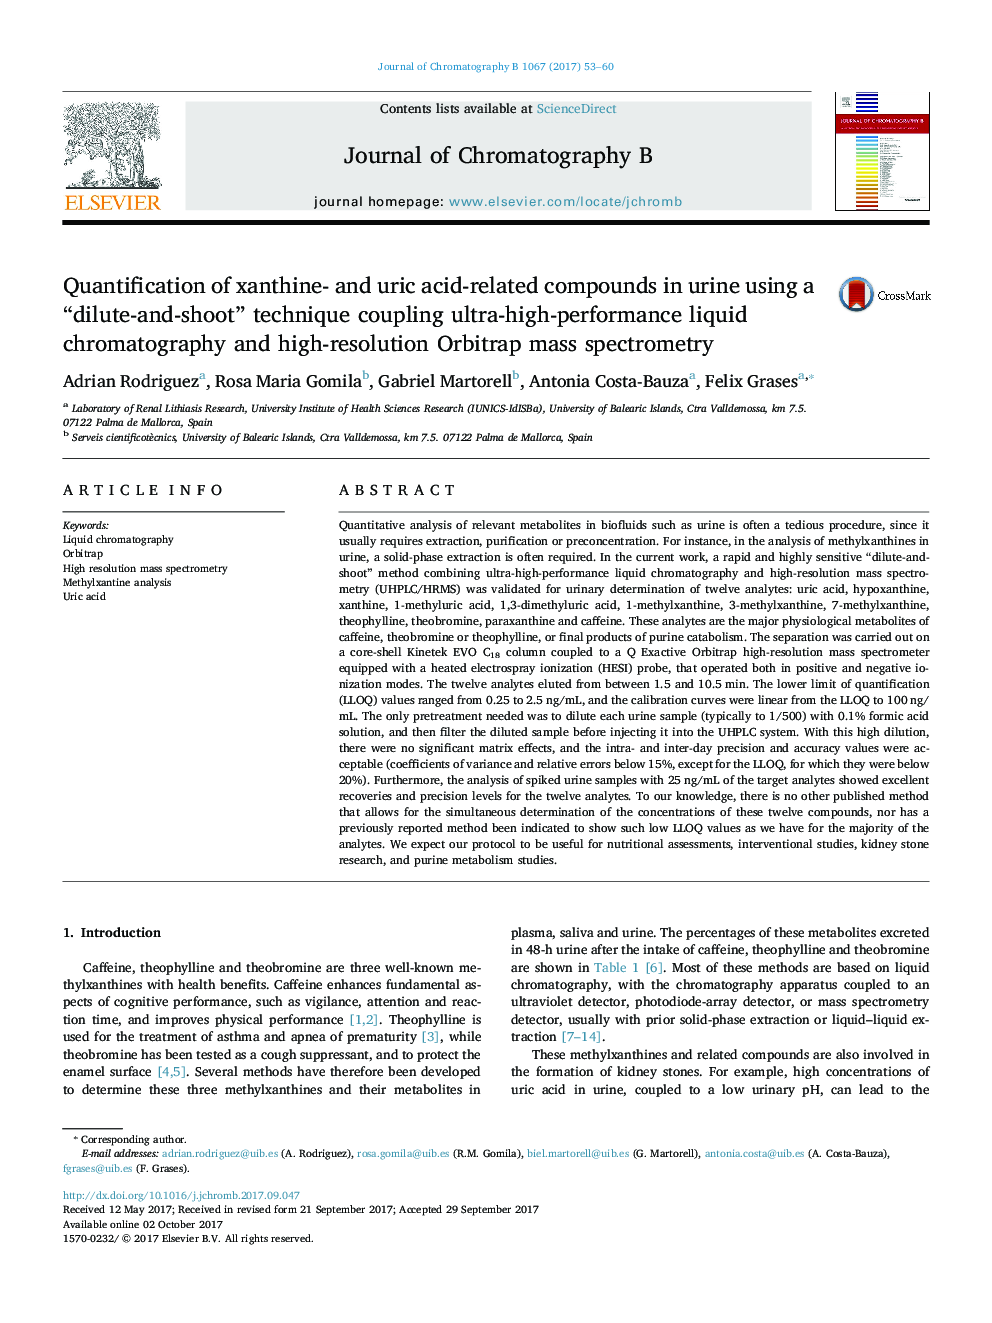 "Quantification of xanthine- and uric acid-related compounds in urine using a ""dilute-and-shoot"" technique coupling ultra-high-performance liquid chromatography and high-resolution Orbitrap mass spectrometry"